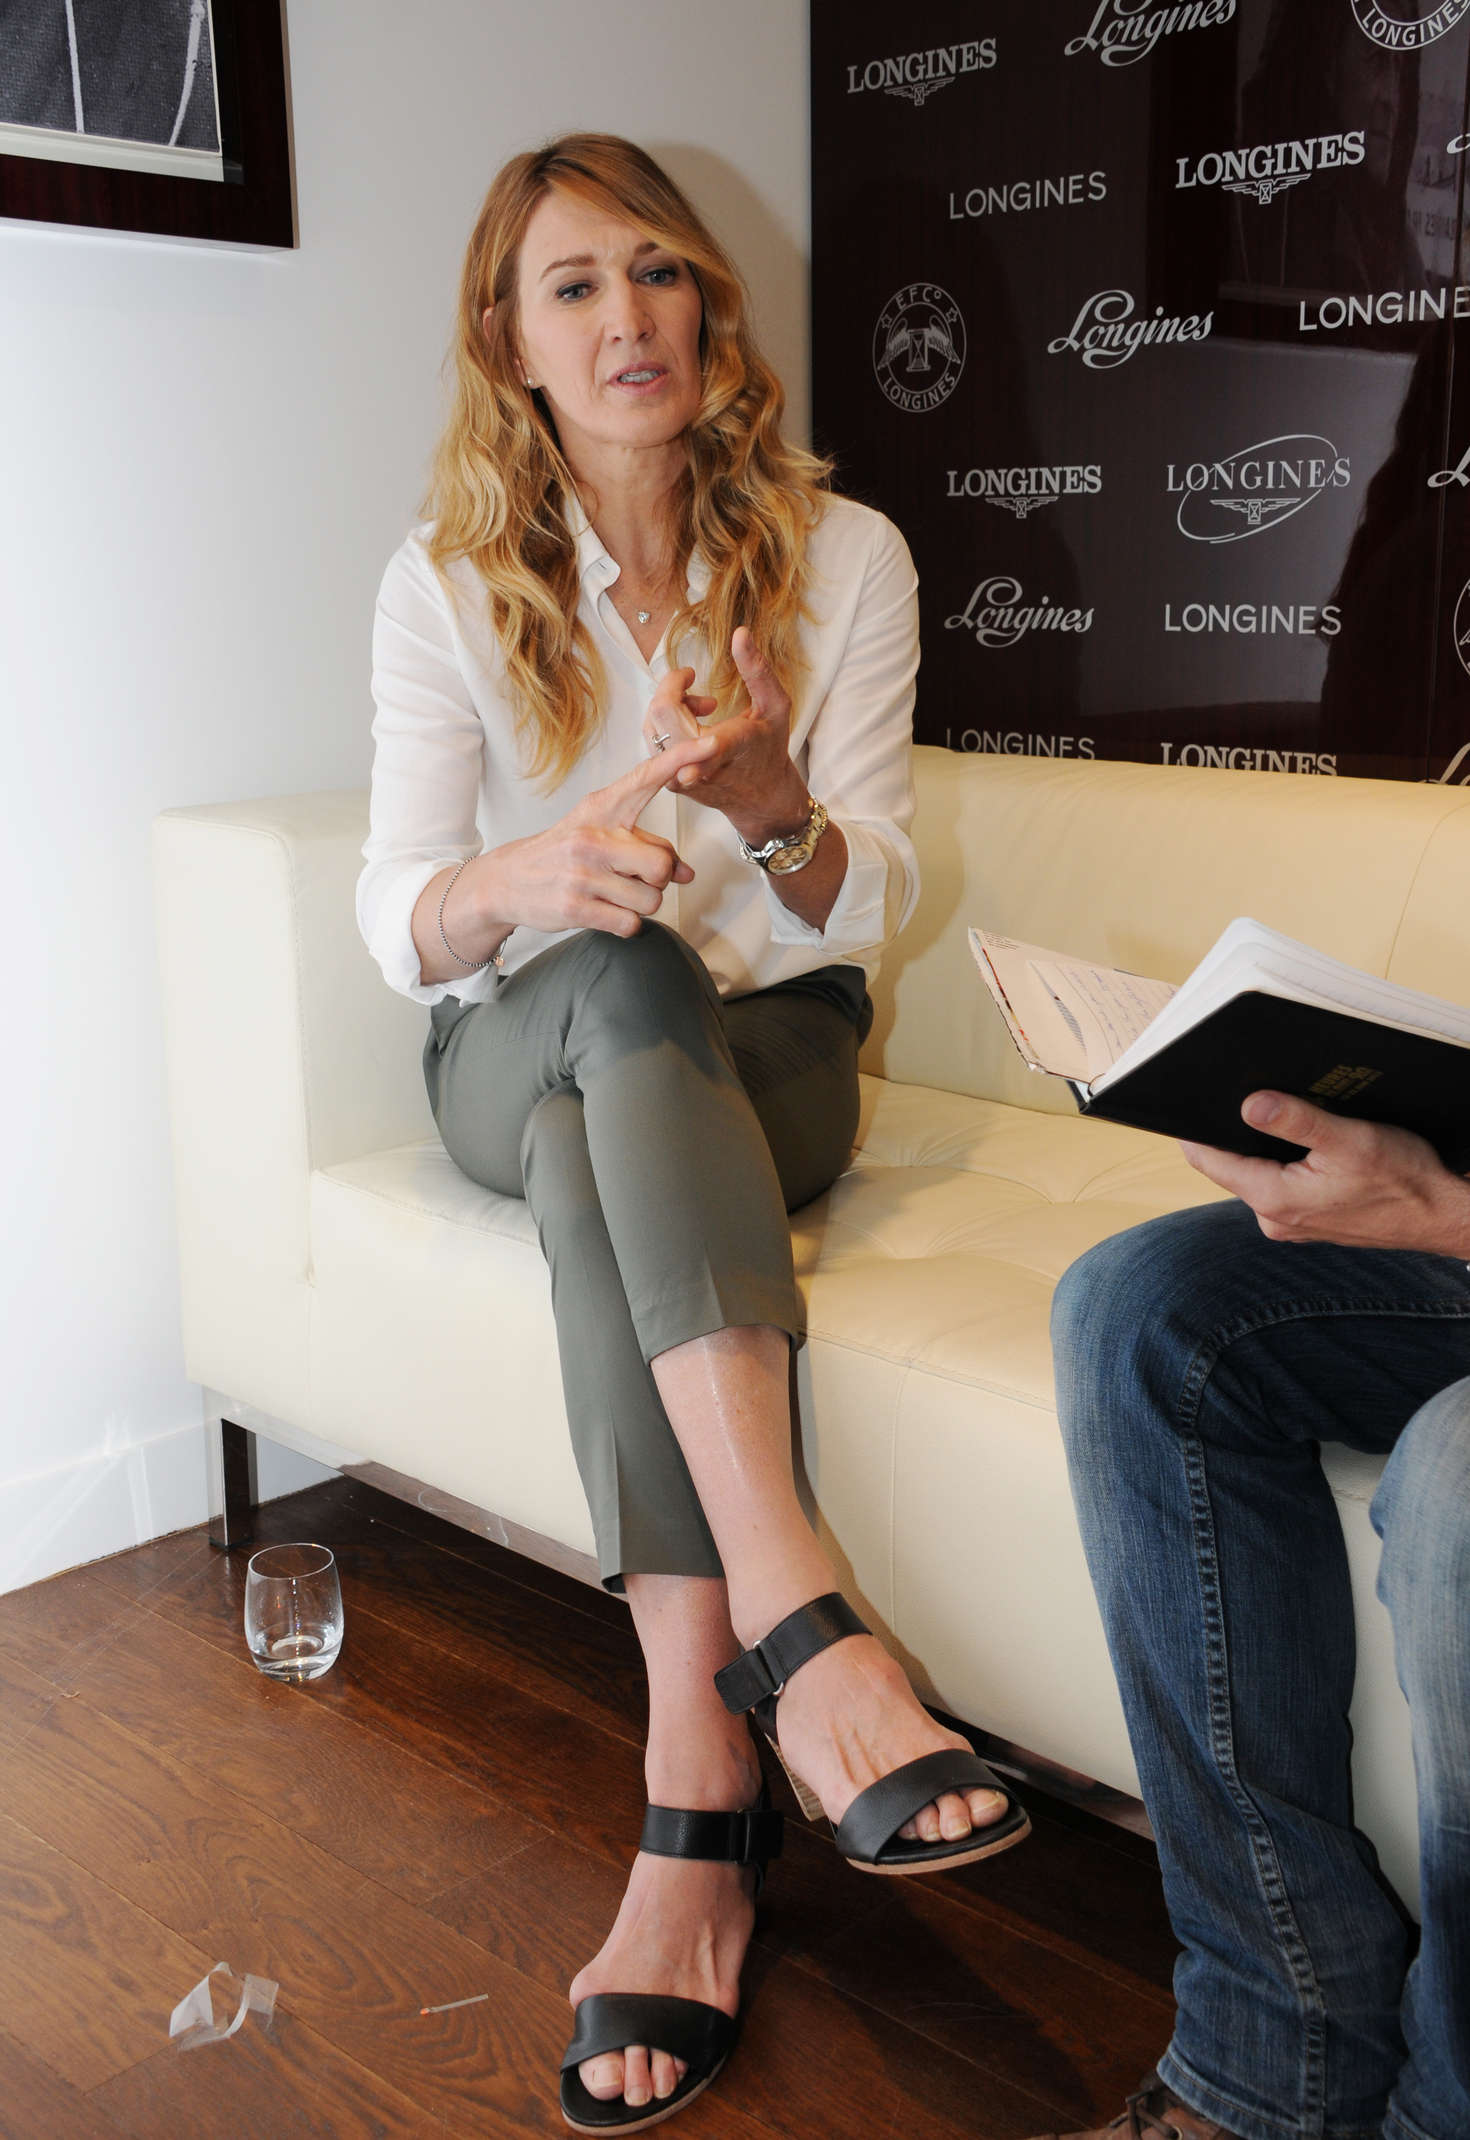 Steffi Graf at the Boutique Longines 01 GotCeleb